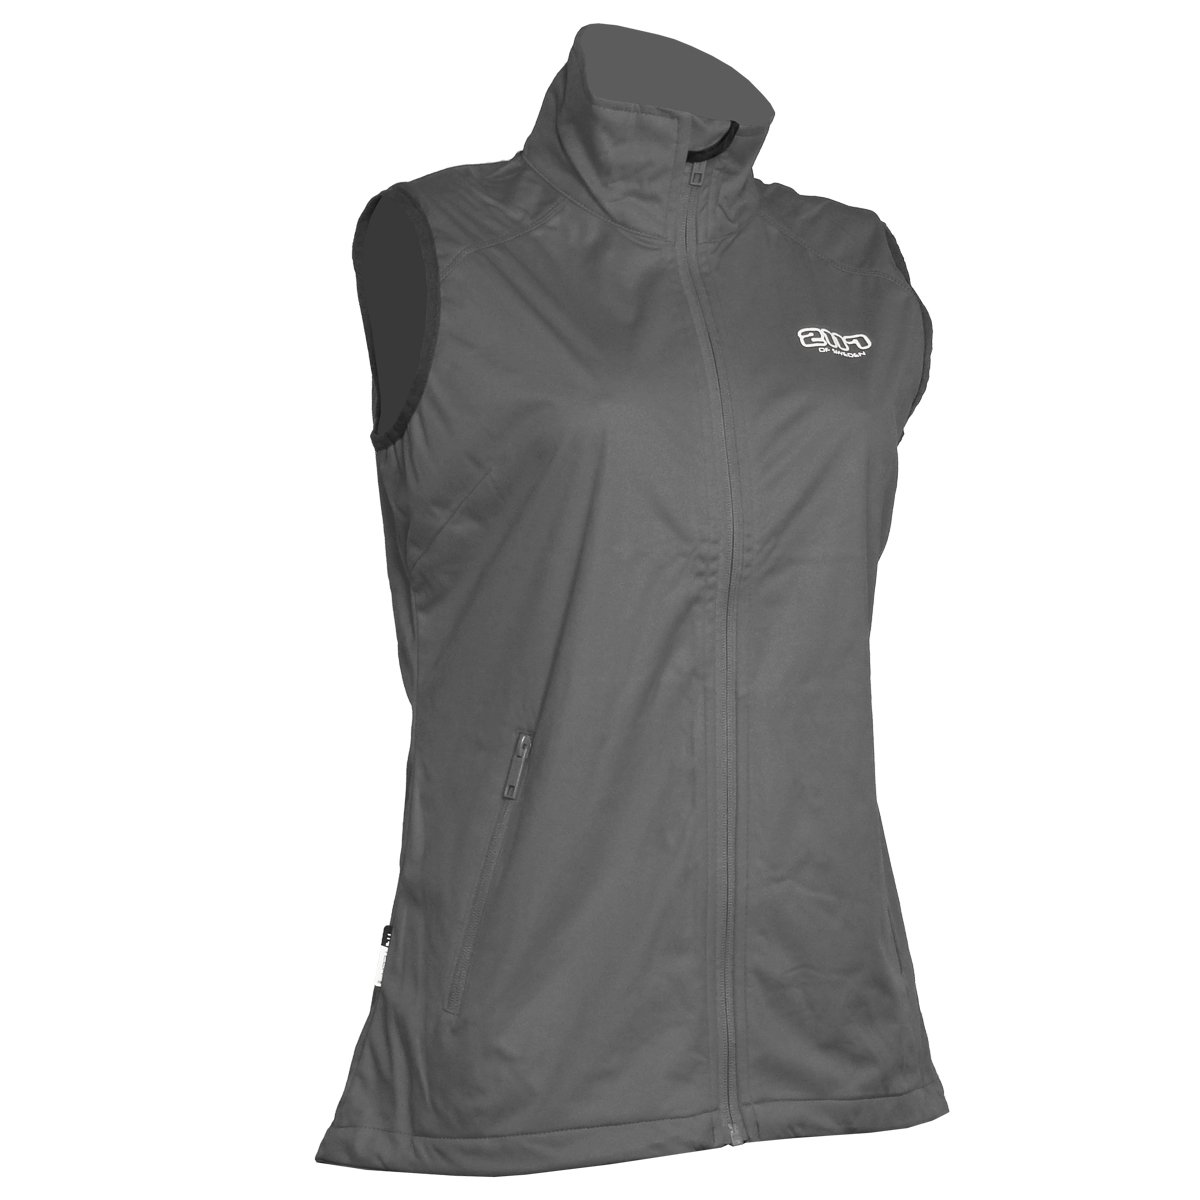 2117 OF SWEDEN SAXNÄS VEST Damen Softshell Weste Funktionsweste, Outdoorweste 7943905 42)